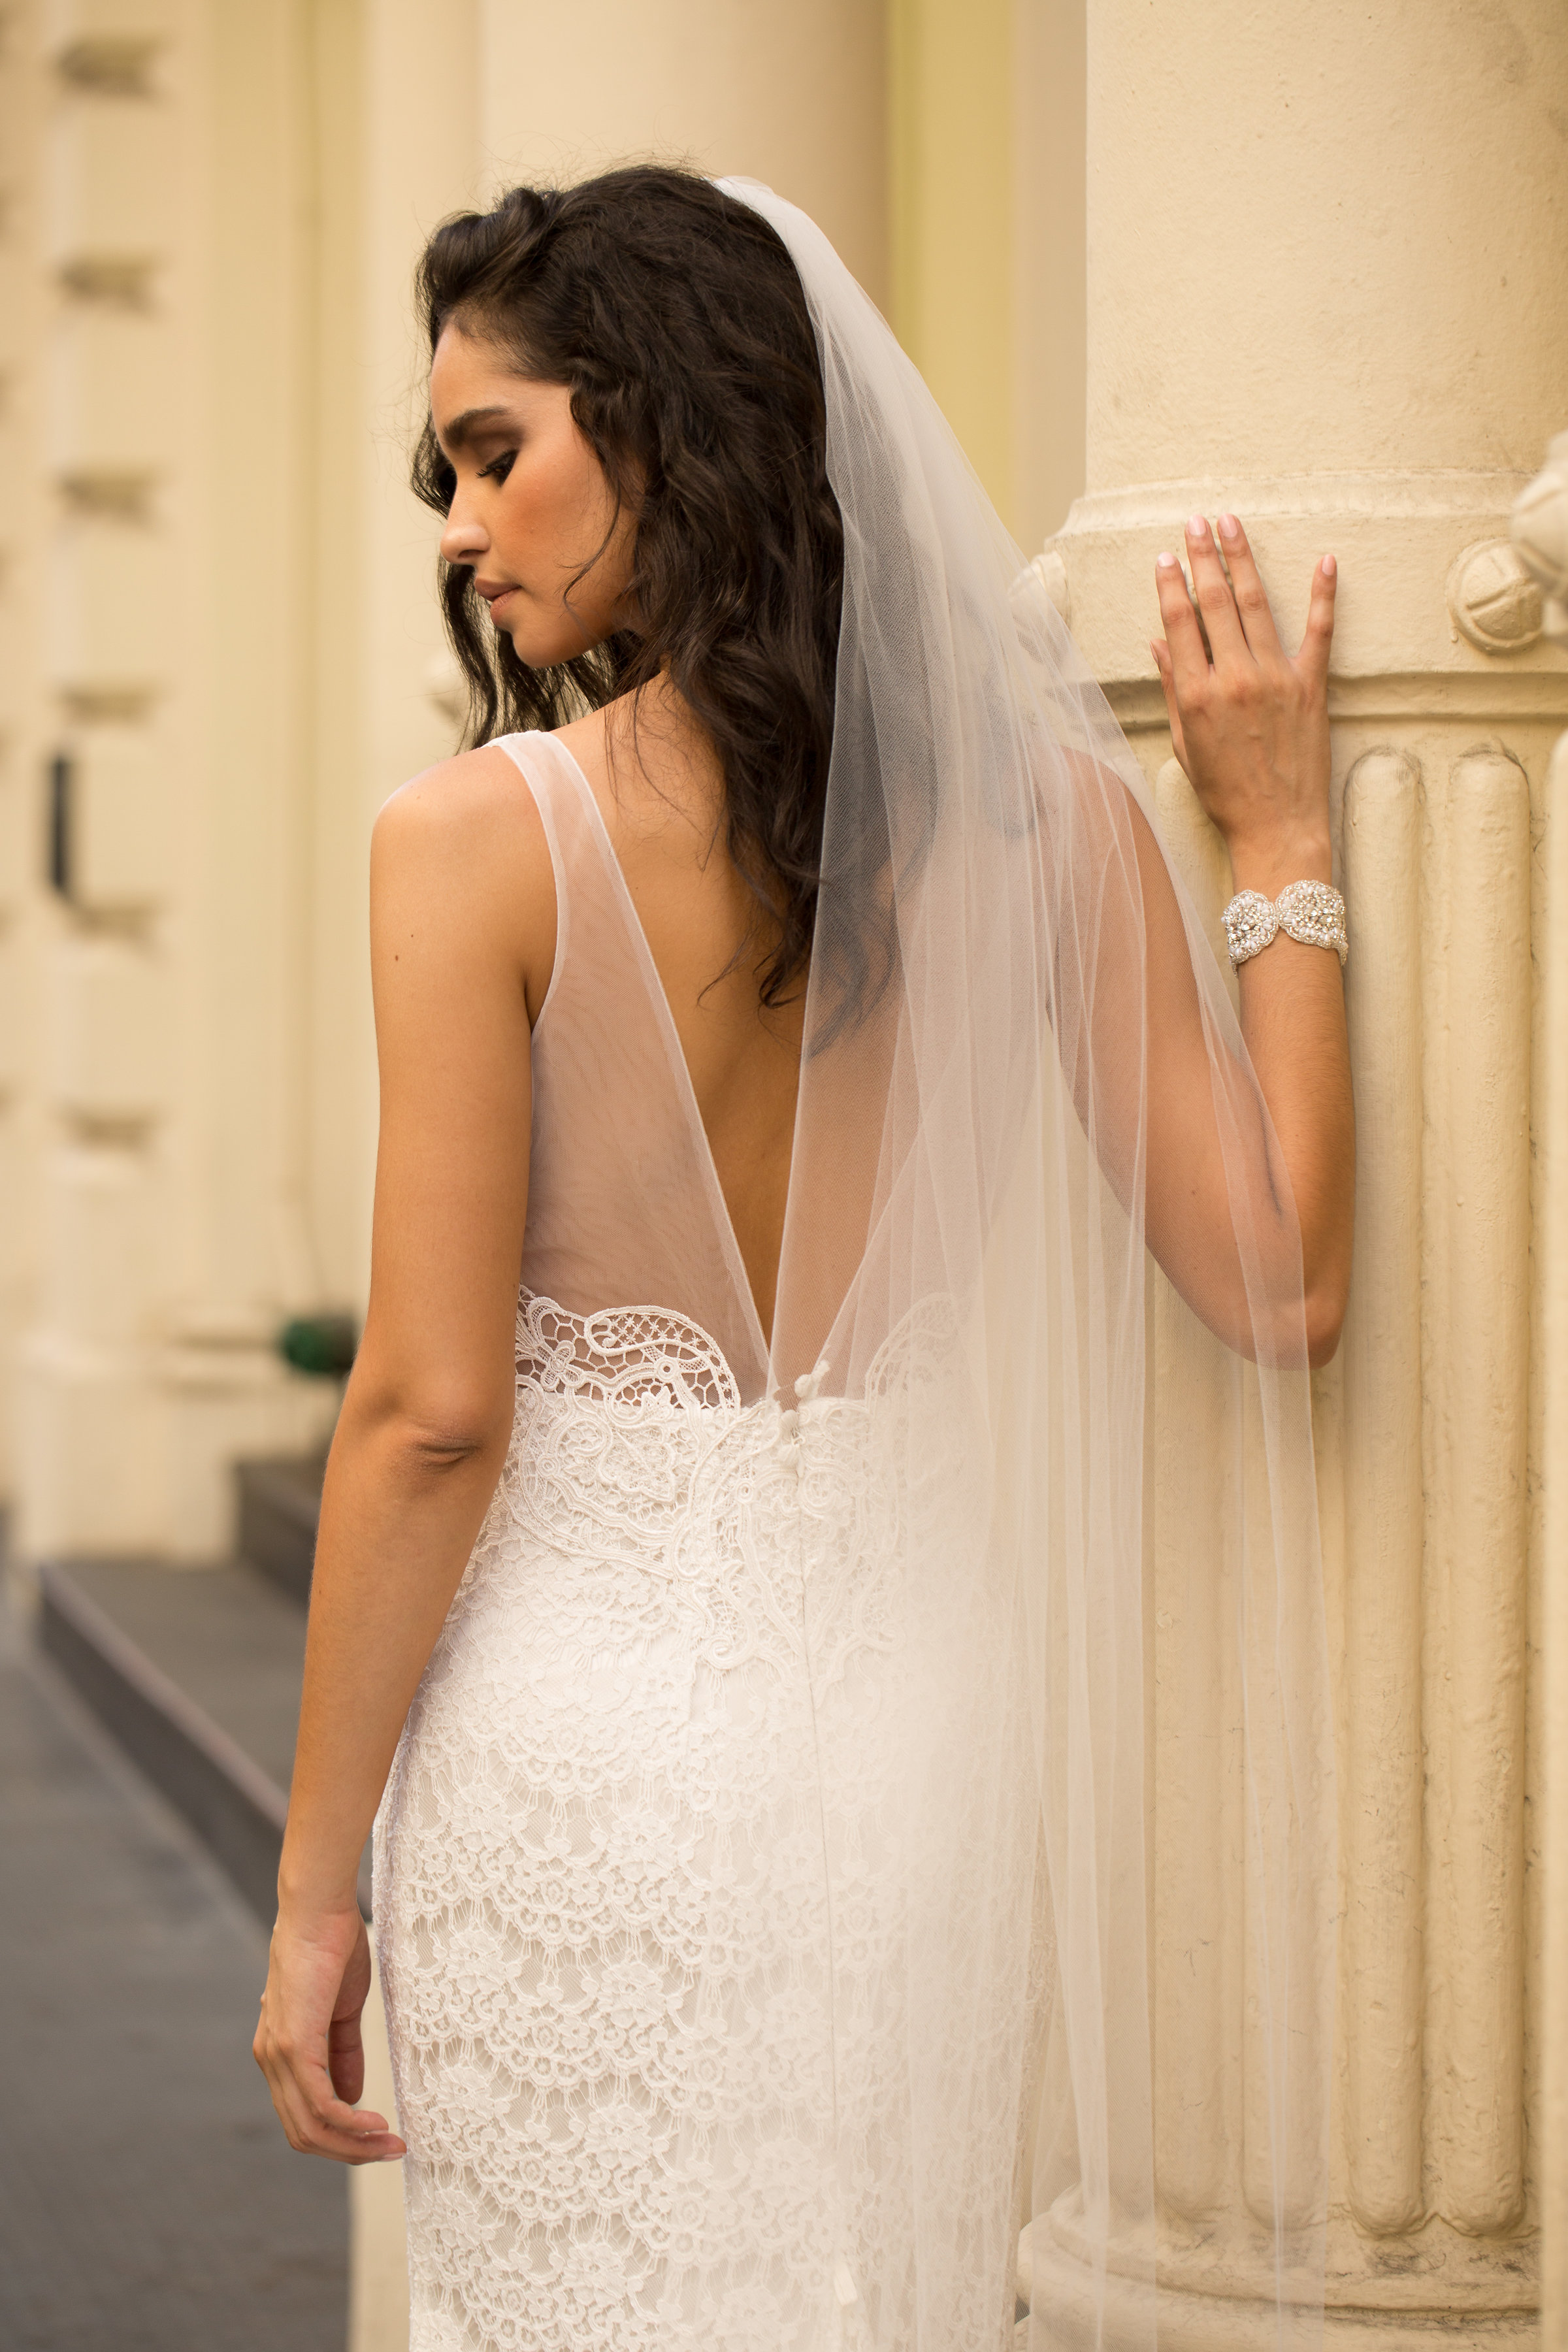 Saasha Dress (Non-Embellished) - Understated romantic details, such as a soft ivory lace and sheer tulle shoulder and back details, make this non-embellished Saasha dress the perfect option for a modern Anna Campbell bride.Styled with the Zara Chapel Length Veil.